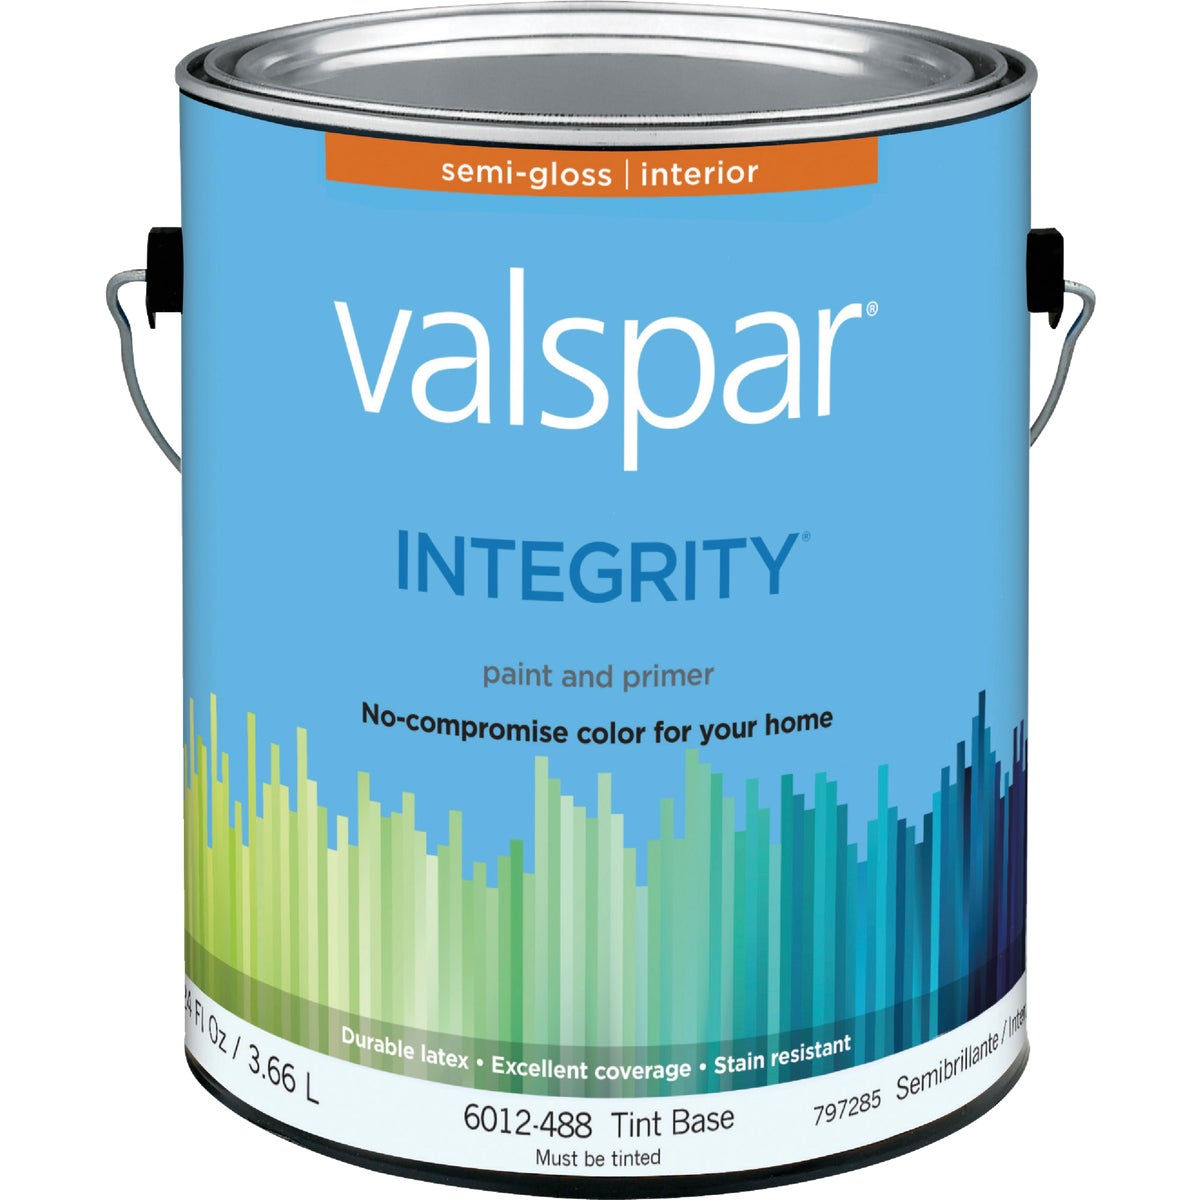 INT S/G TINT BS PAINT - 004.6012488.007 by Valspar Corp